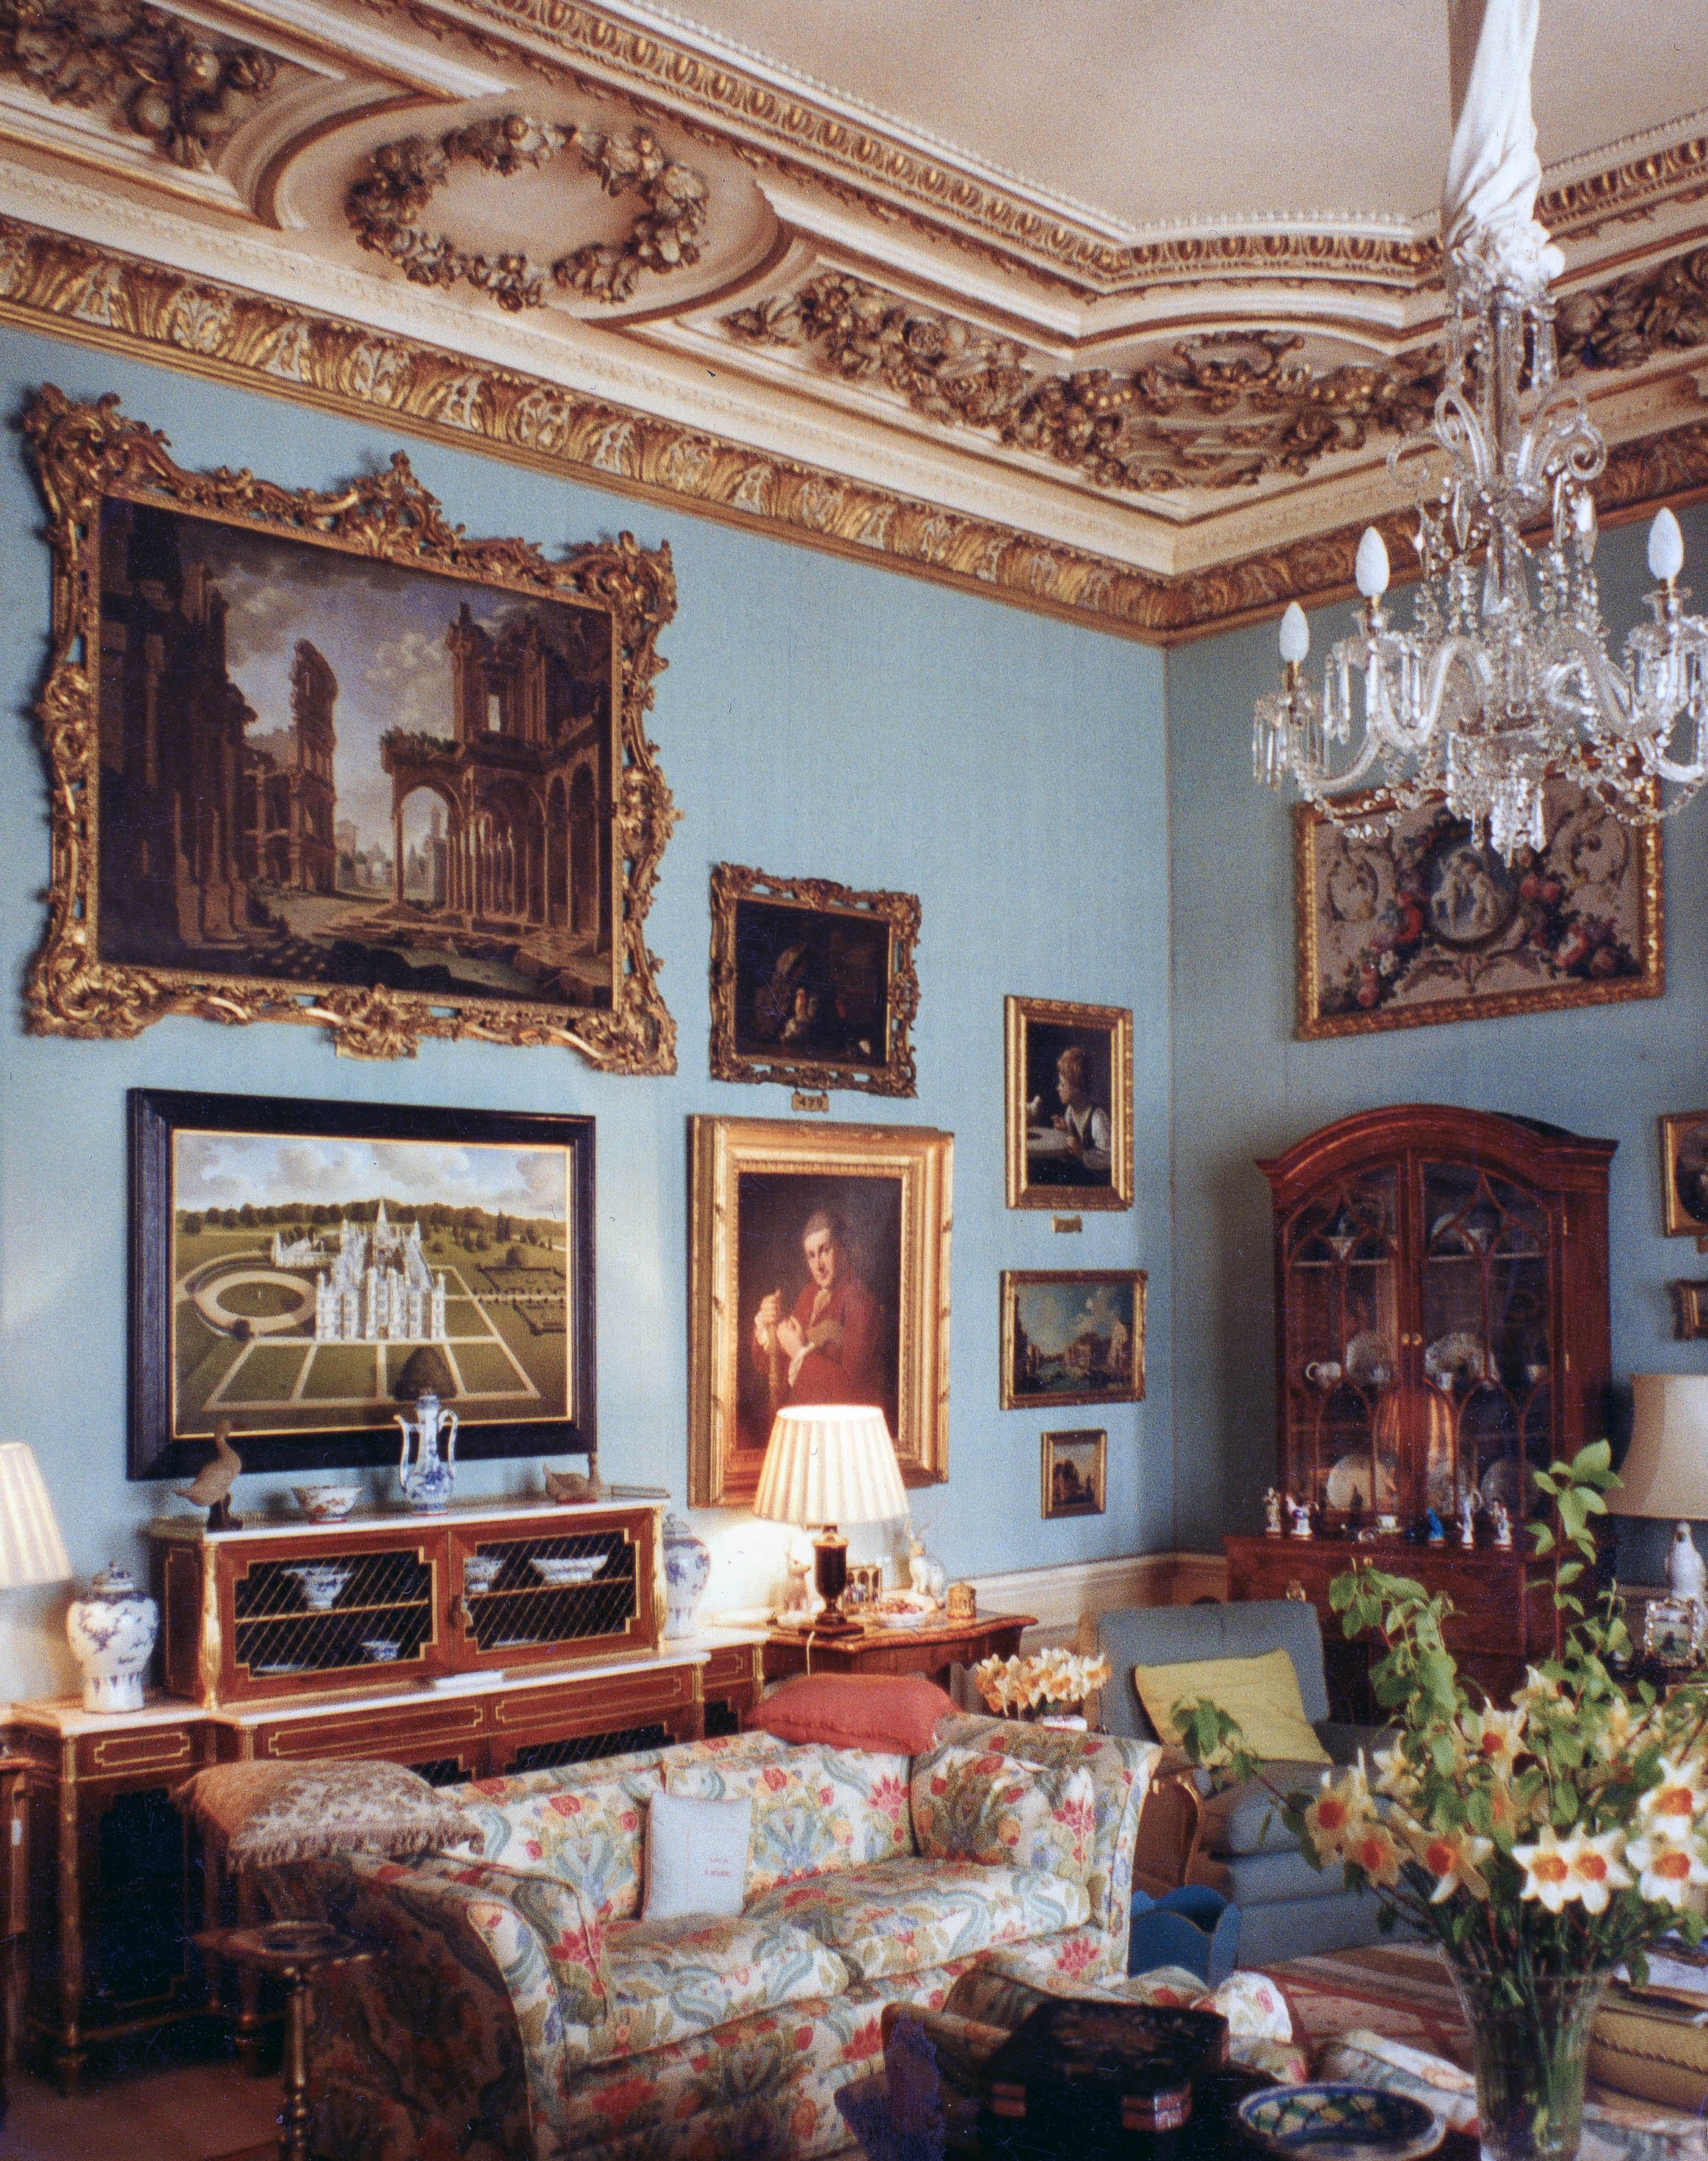 One of Jonathan Myles-Lea's paintings of Burghley hanging in the Blue Sitting Room inside the house. Above the painting hangs a capriccio by Giovanni Paolo Pannini and to the right is Angelica Kaufman's self-portrait.